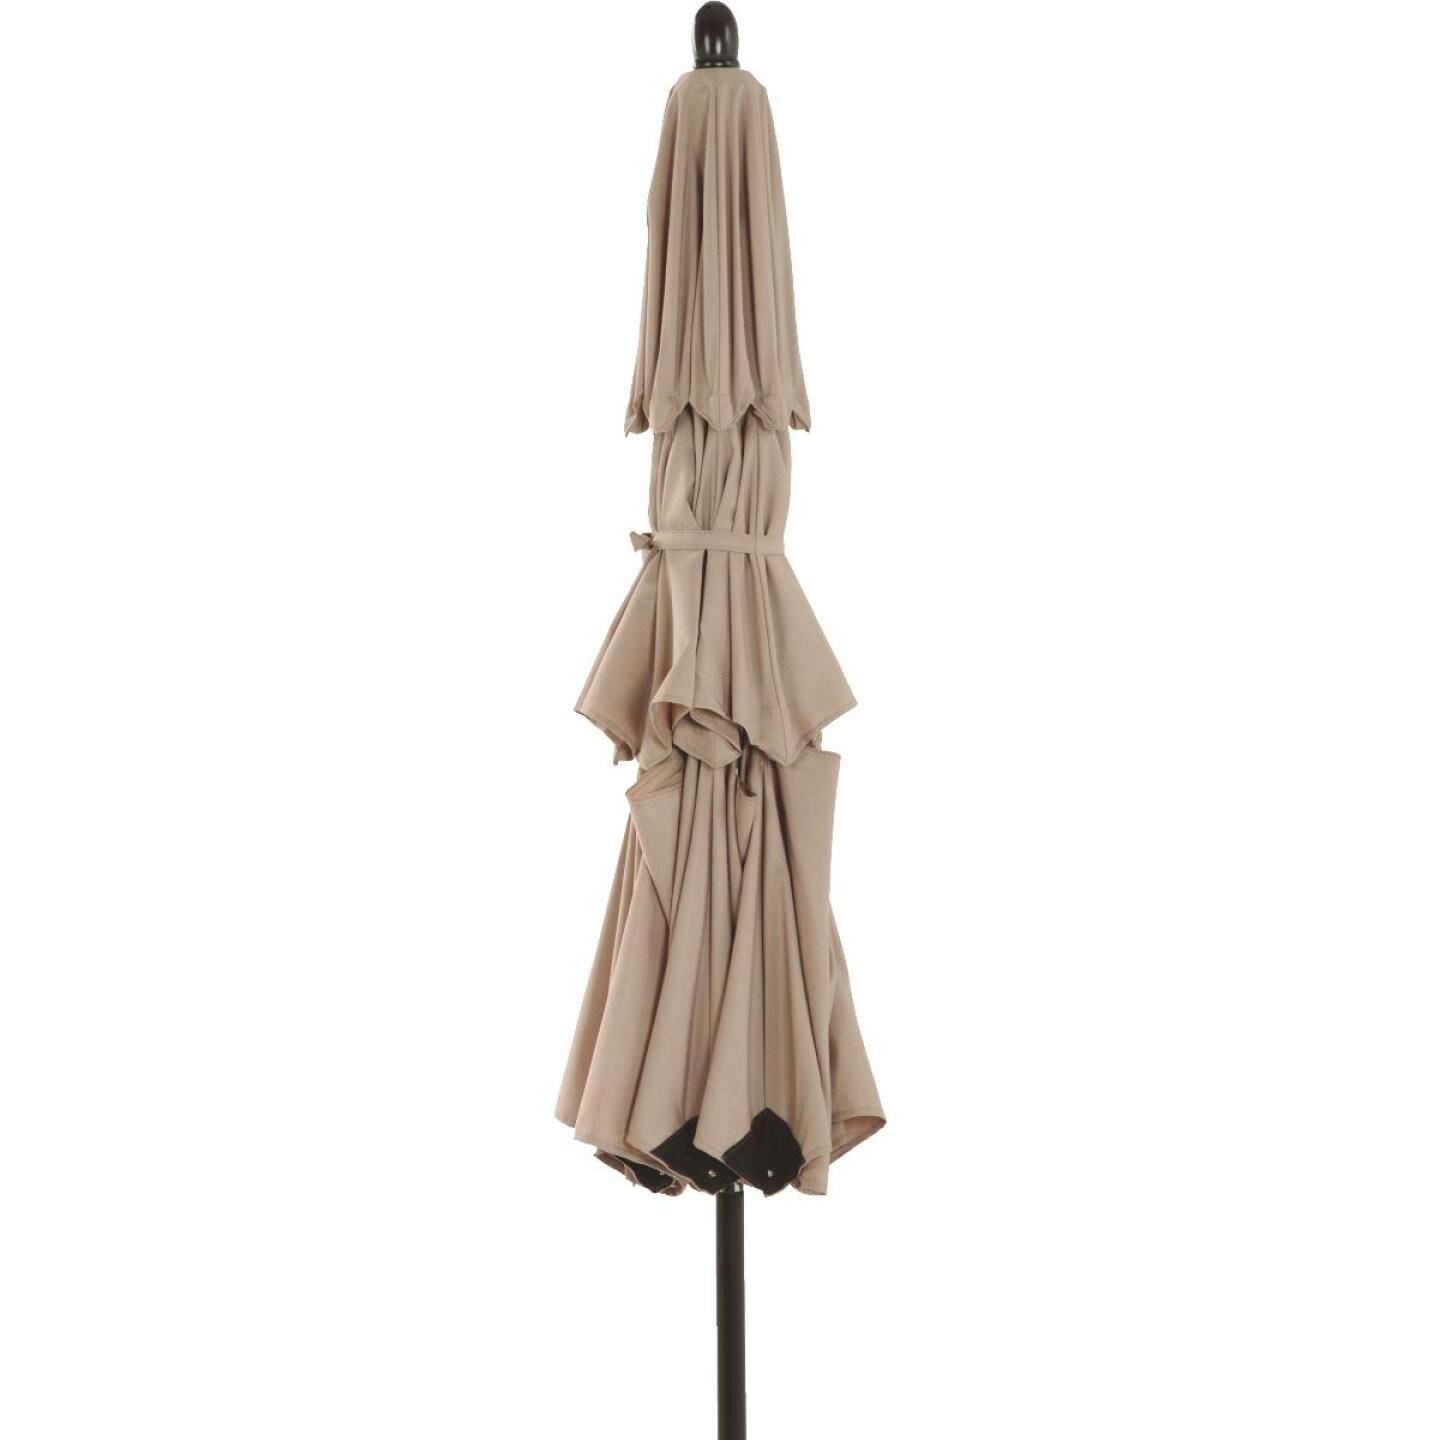 Outdoor Expressions 9 Ft. 3-Tier Tilt/Pulley Tan Patio Umbrella Image 3